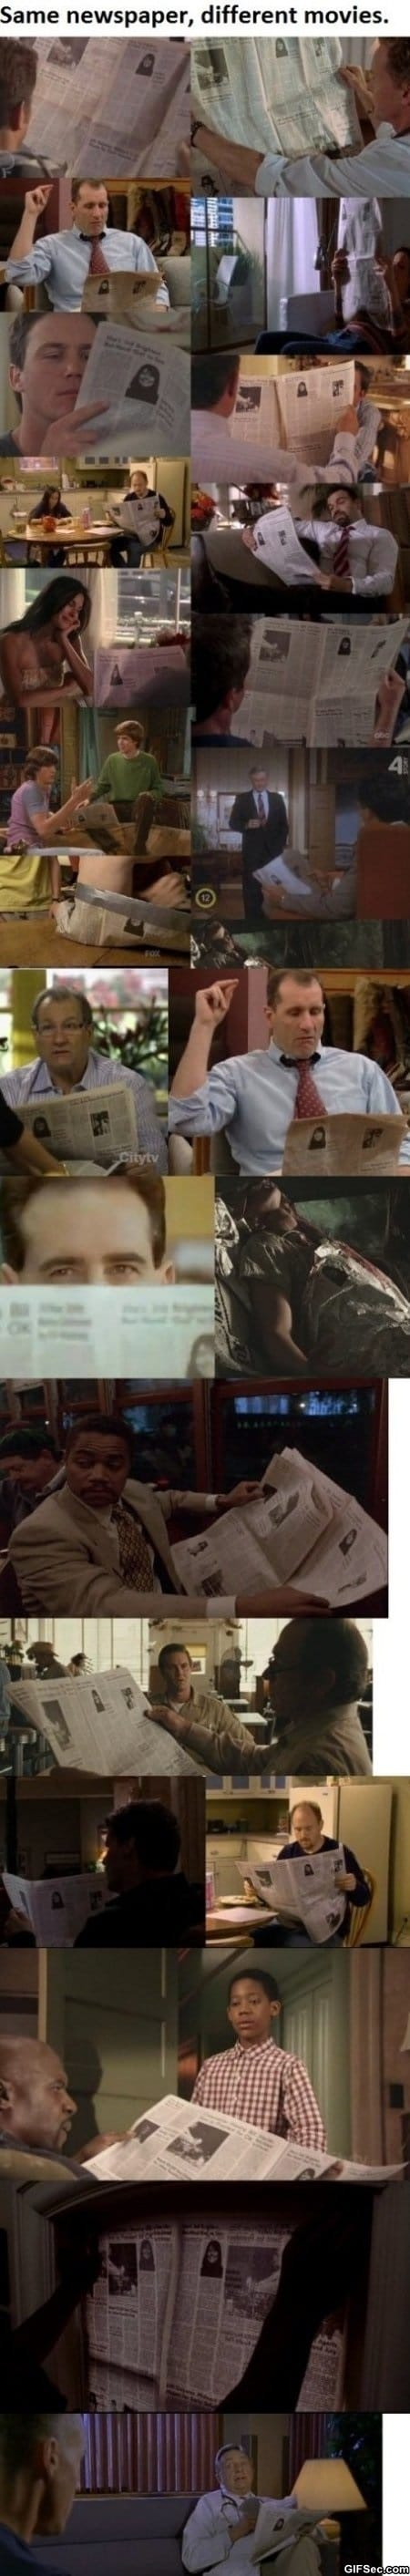 same-newspaper-in-different-movies